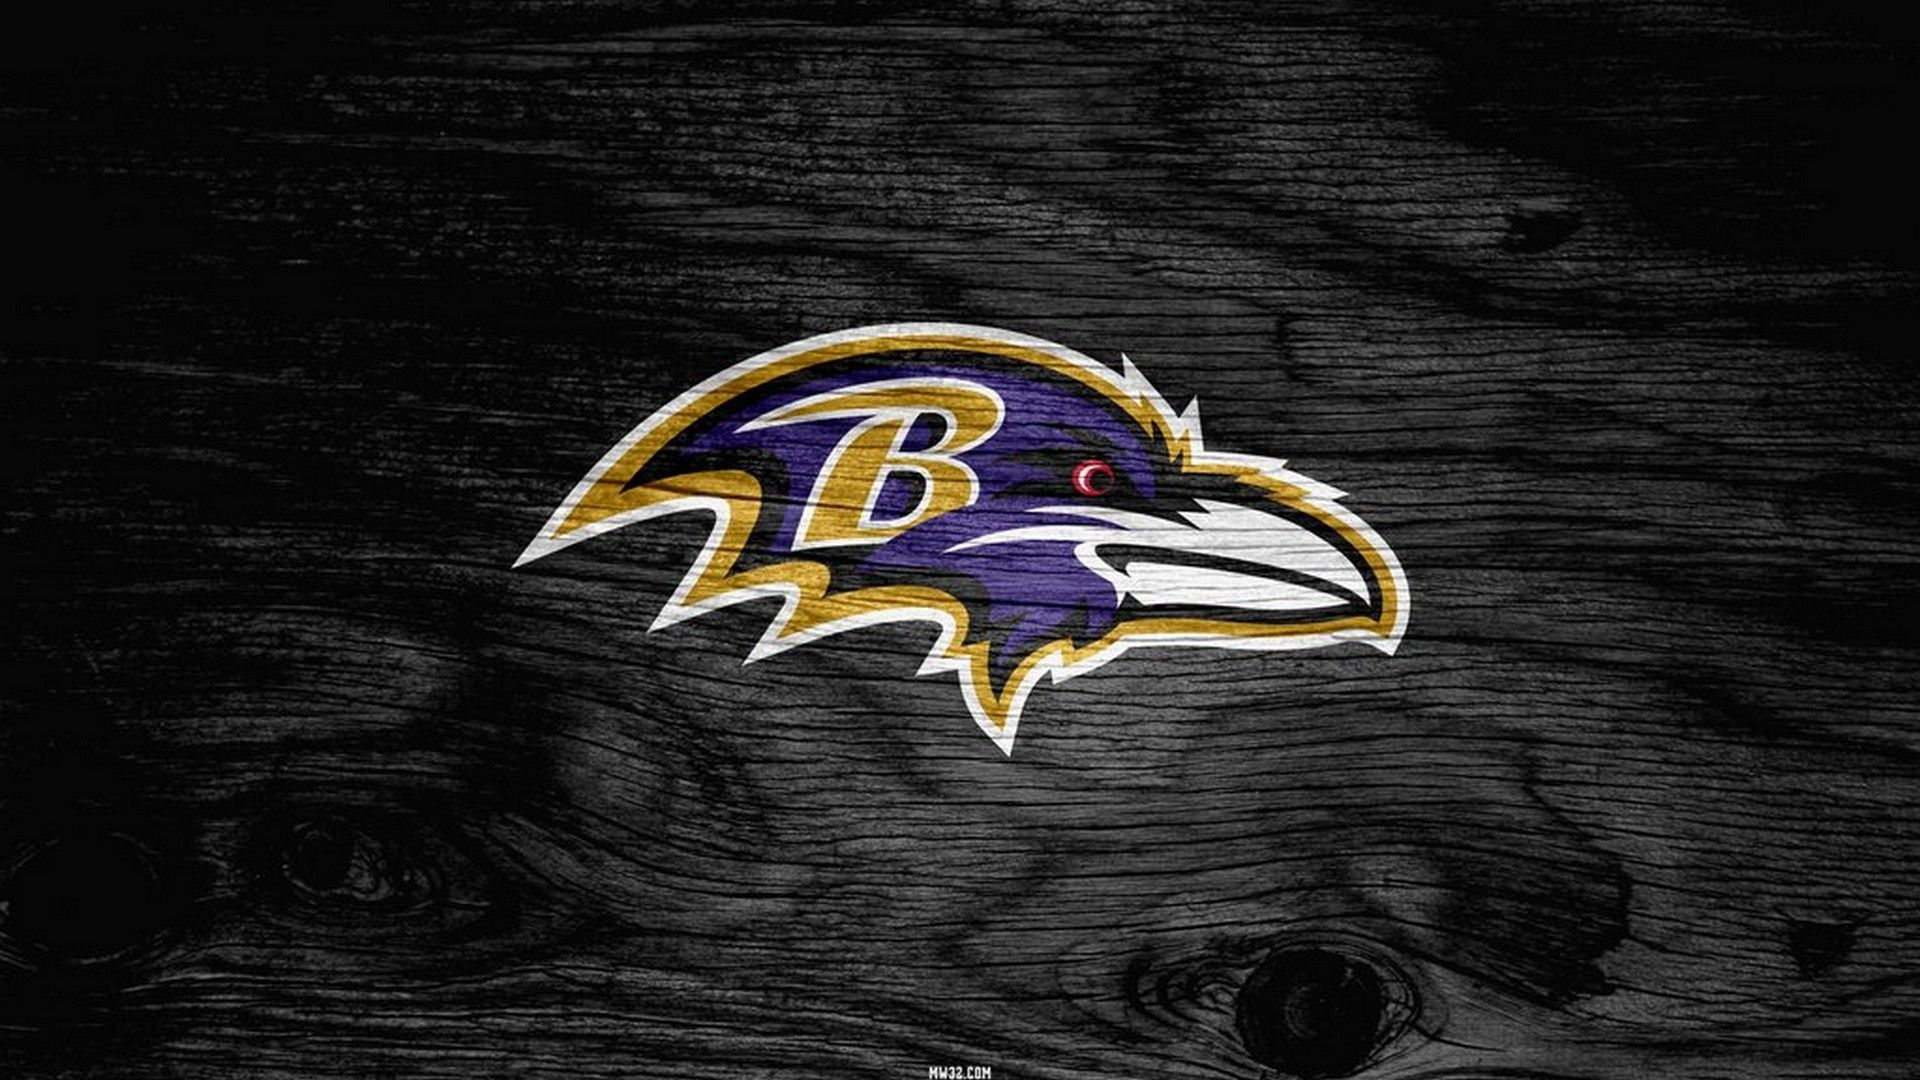 Wallpapers HD Baltimore Ravens Baltimore ravens wallpapers 1920x1080